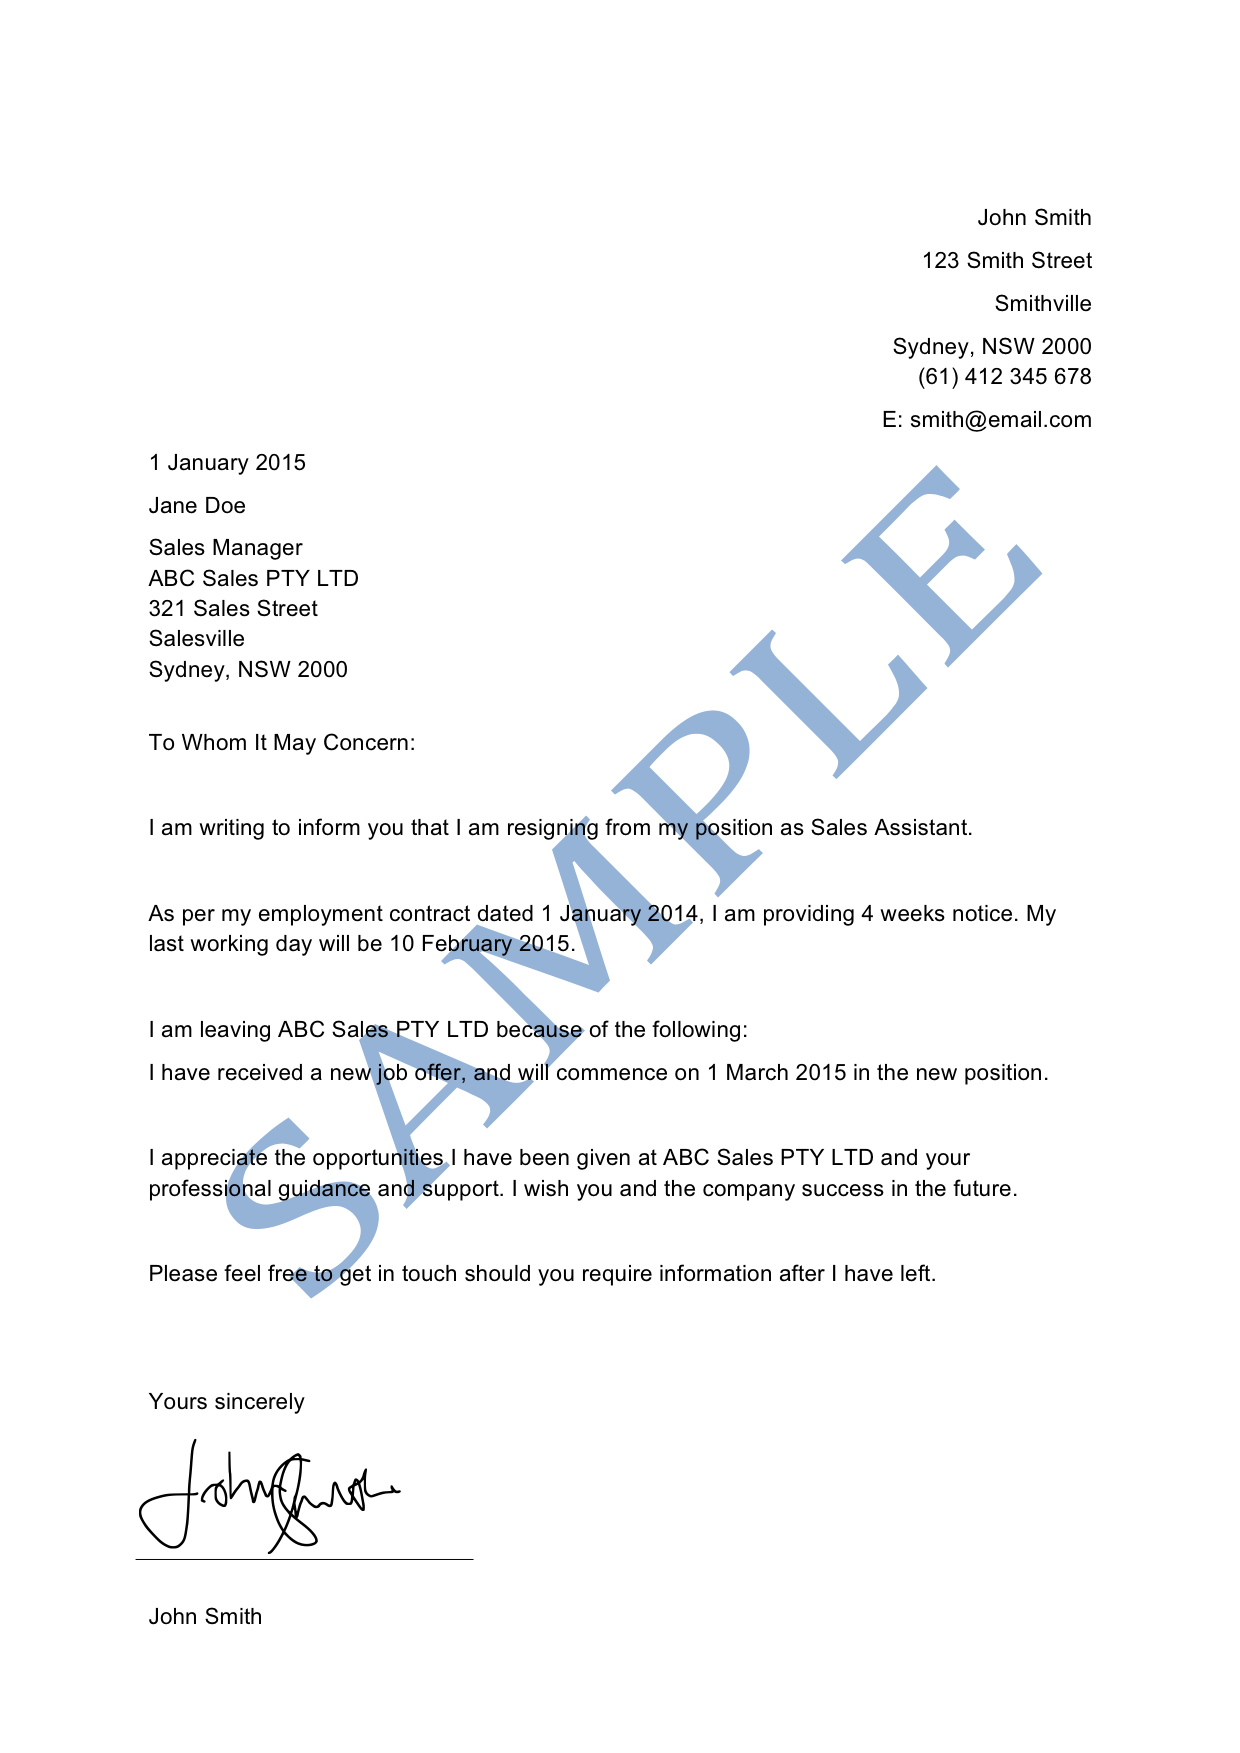 Letter of Resignation Sample - LawPath